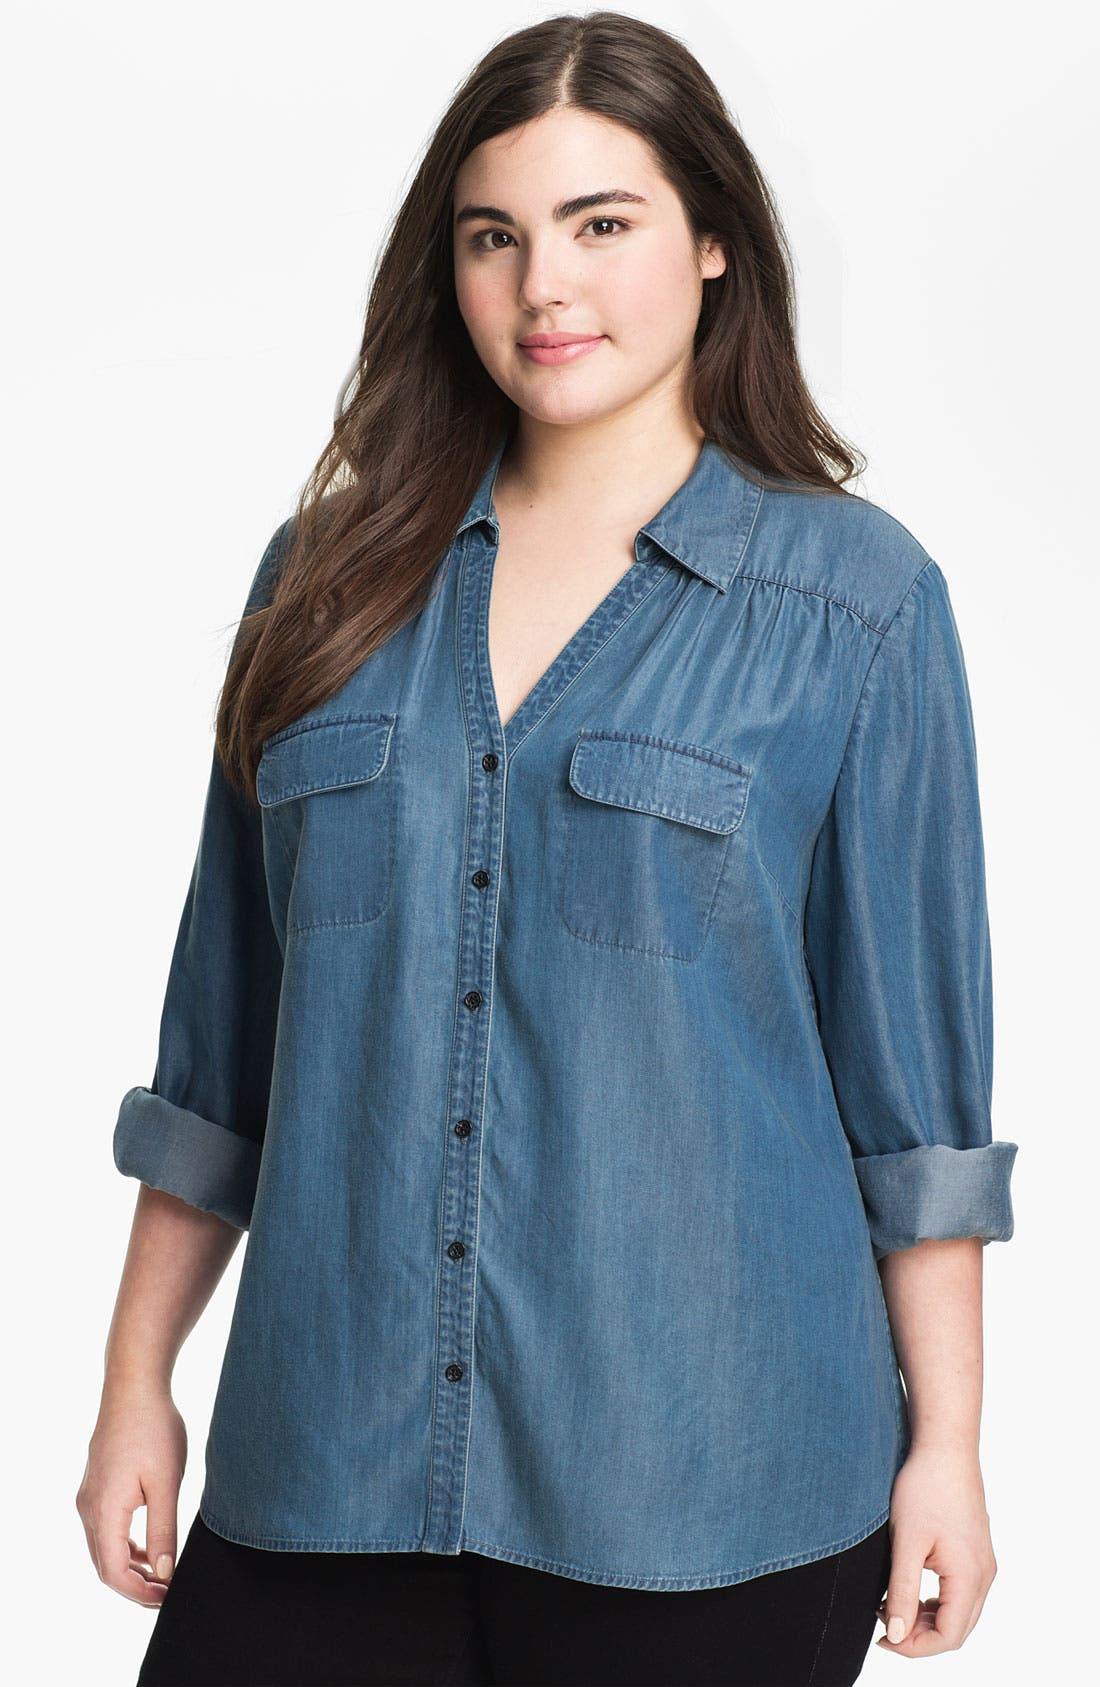 Alternate Image 1 Selected - Sejour Chambray Button Shirt (Plus Size)